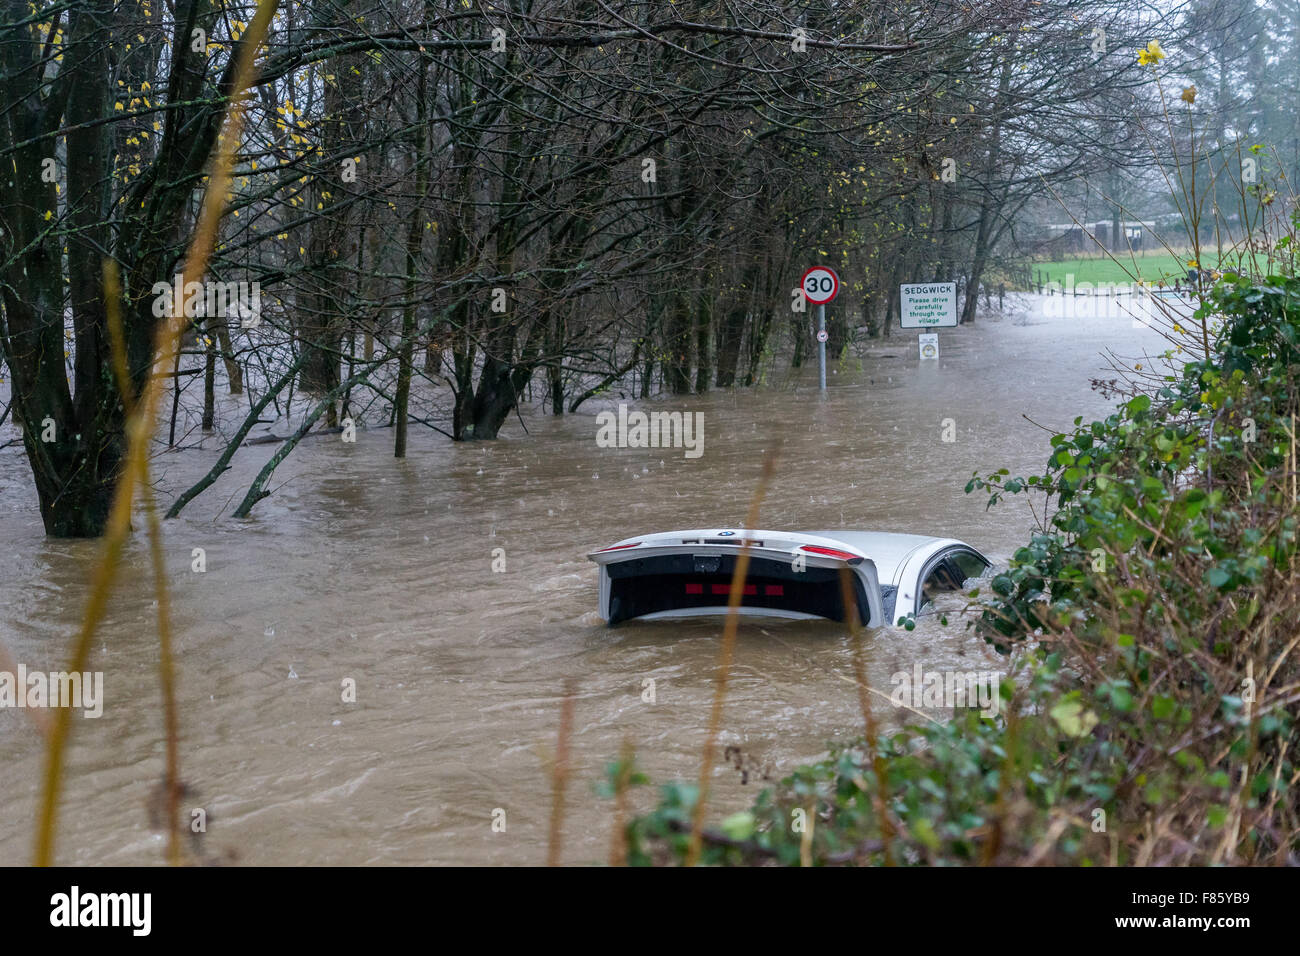 car in flood water stock photo royalty free image 91100333 alamy. Black Bedroom Furniture Sets. Home Design Ideas